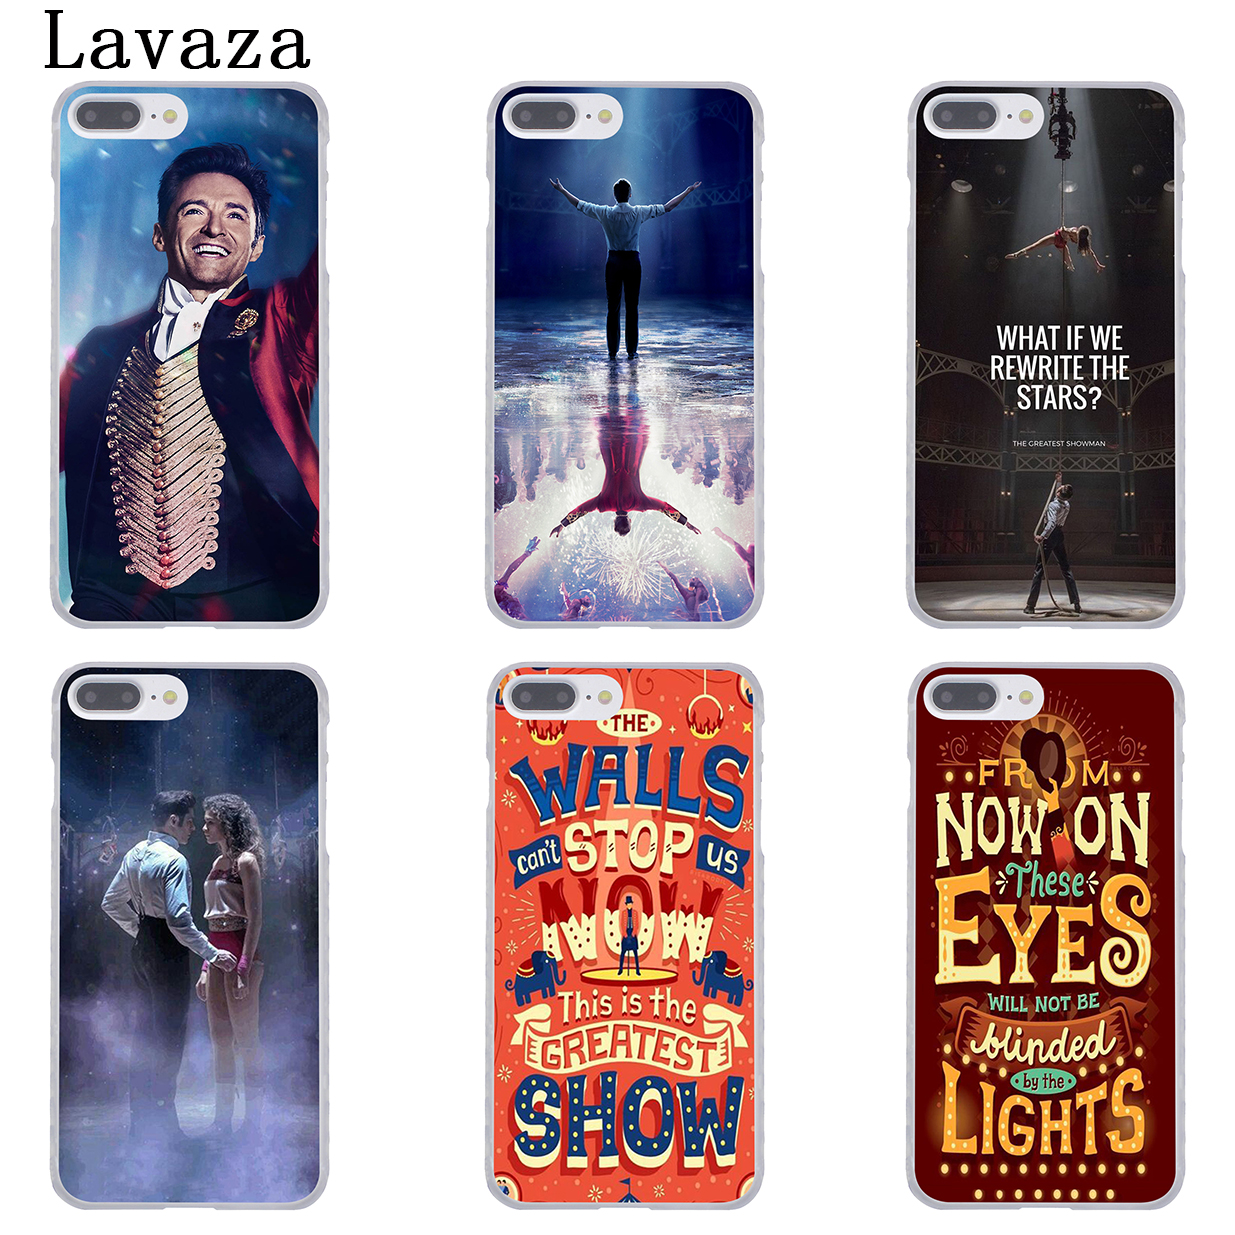 the greatest showman phone case samsung s6